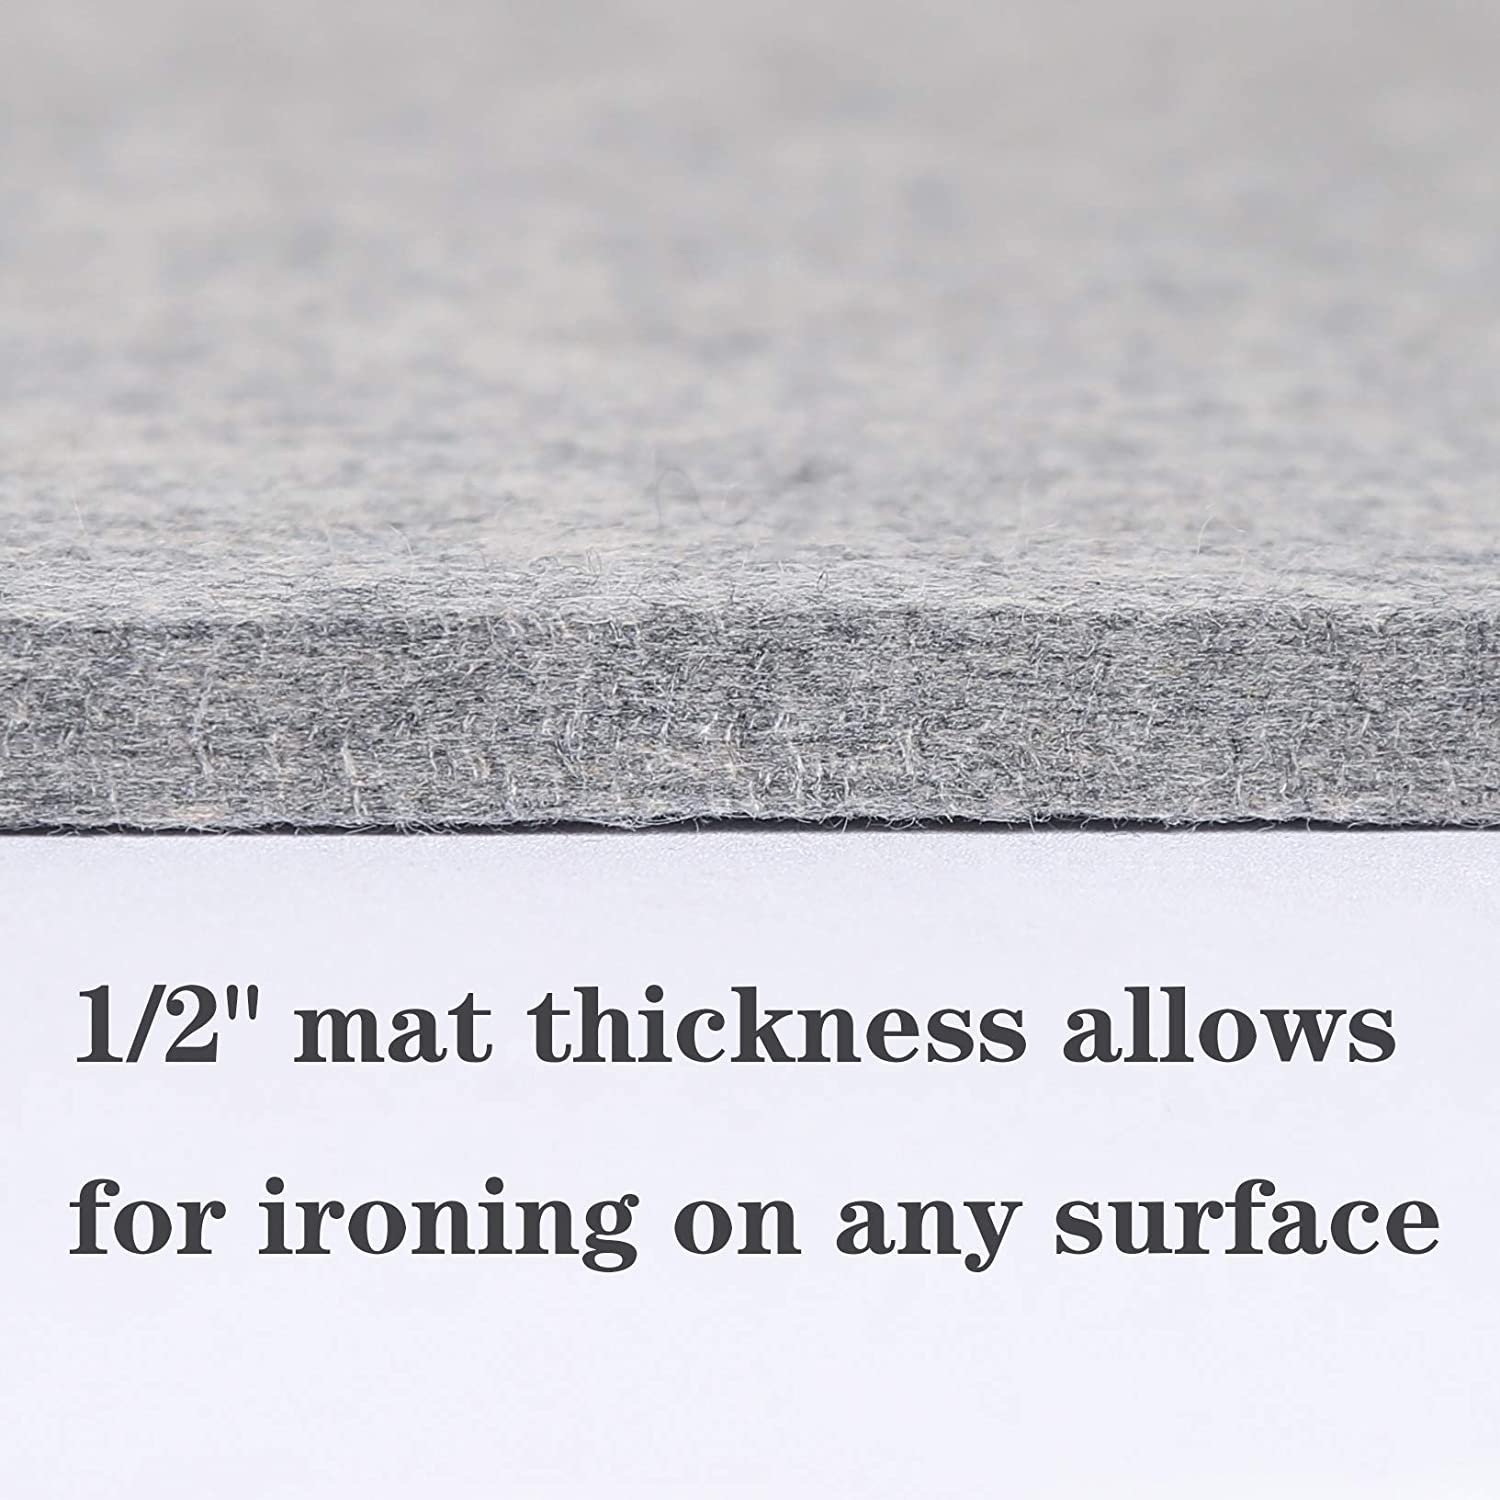 100/% New Zealand Wool Pressing Mat Perfect for All Ironing Station 2 Pack of 13.4 X 17 Wool Ironing Pad for Quilting